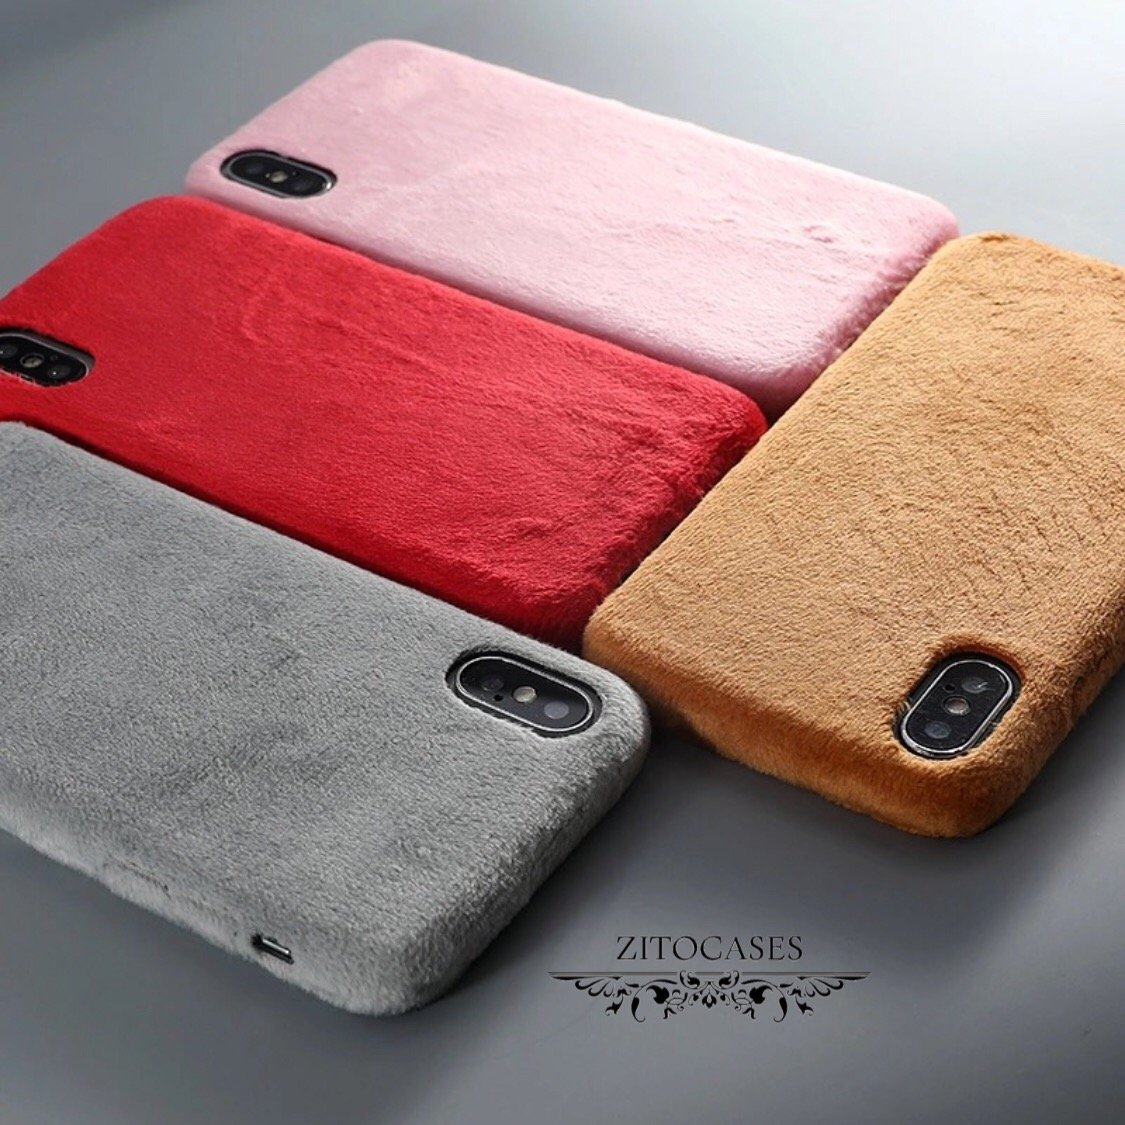 Weiche Kunstfell Winter Hülle/Case verschiedene Farben für IPhone 11, 11 Pro, 11 Pro Max, IPhone X, XS, XS Max, XR, IPhone 8, IPhone 8 Plus, IPhone 7, IPhone 7 Plus, IPhone 6&6s, IPhone 6,6s Plus